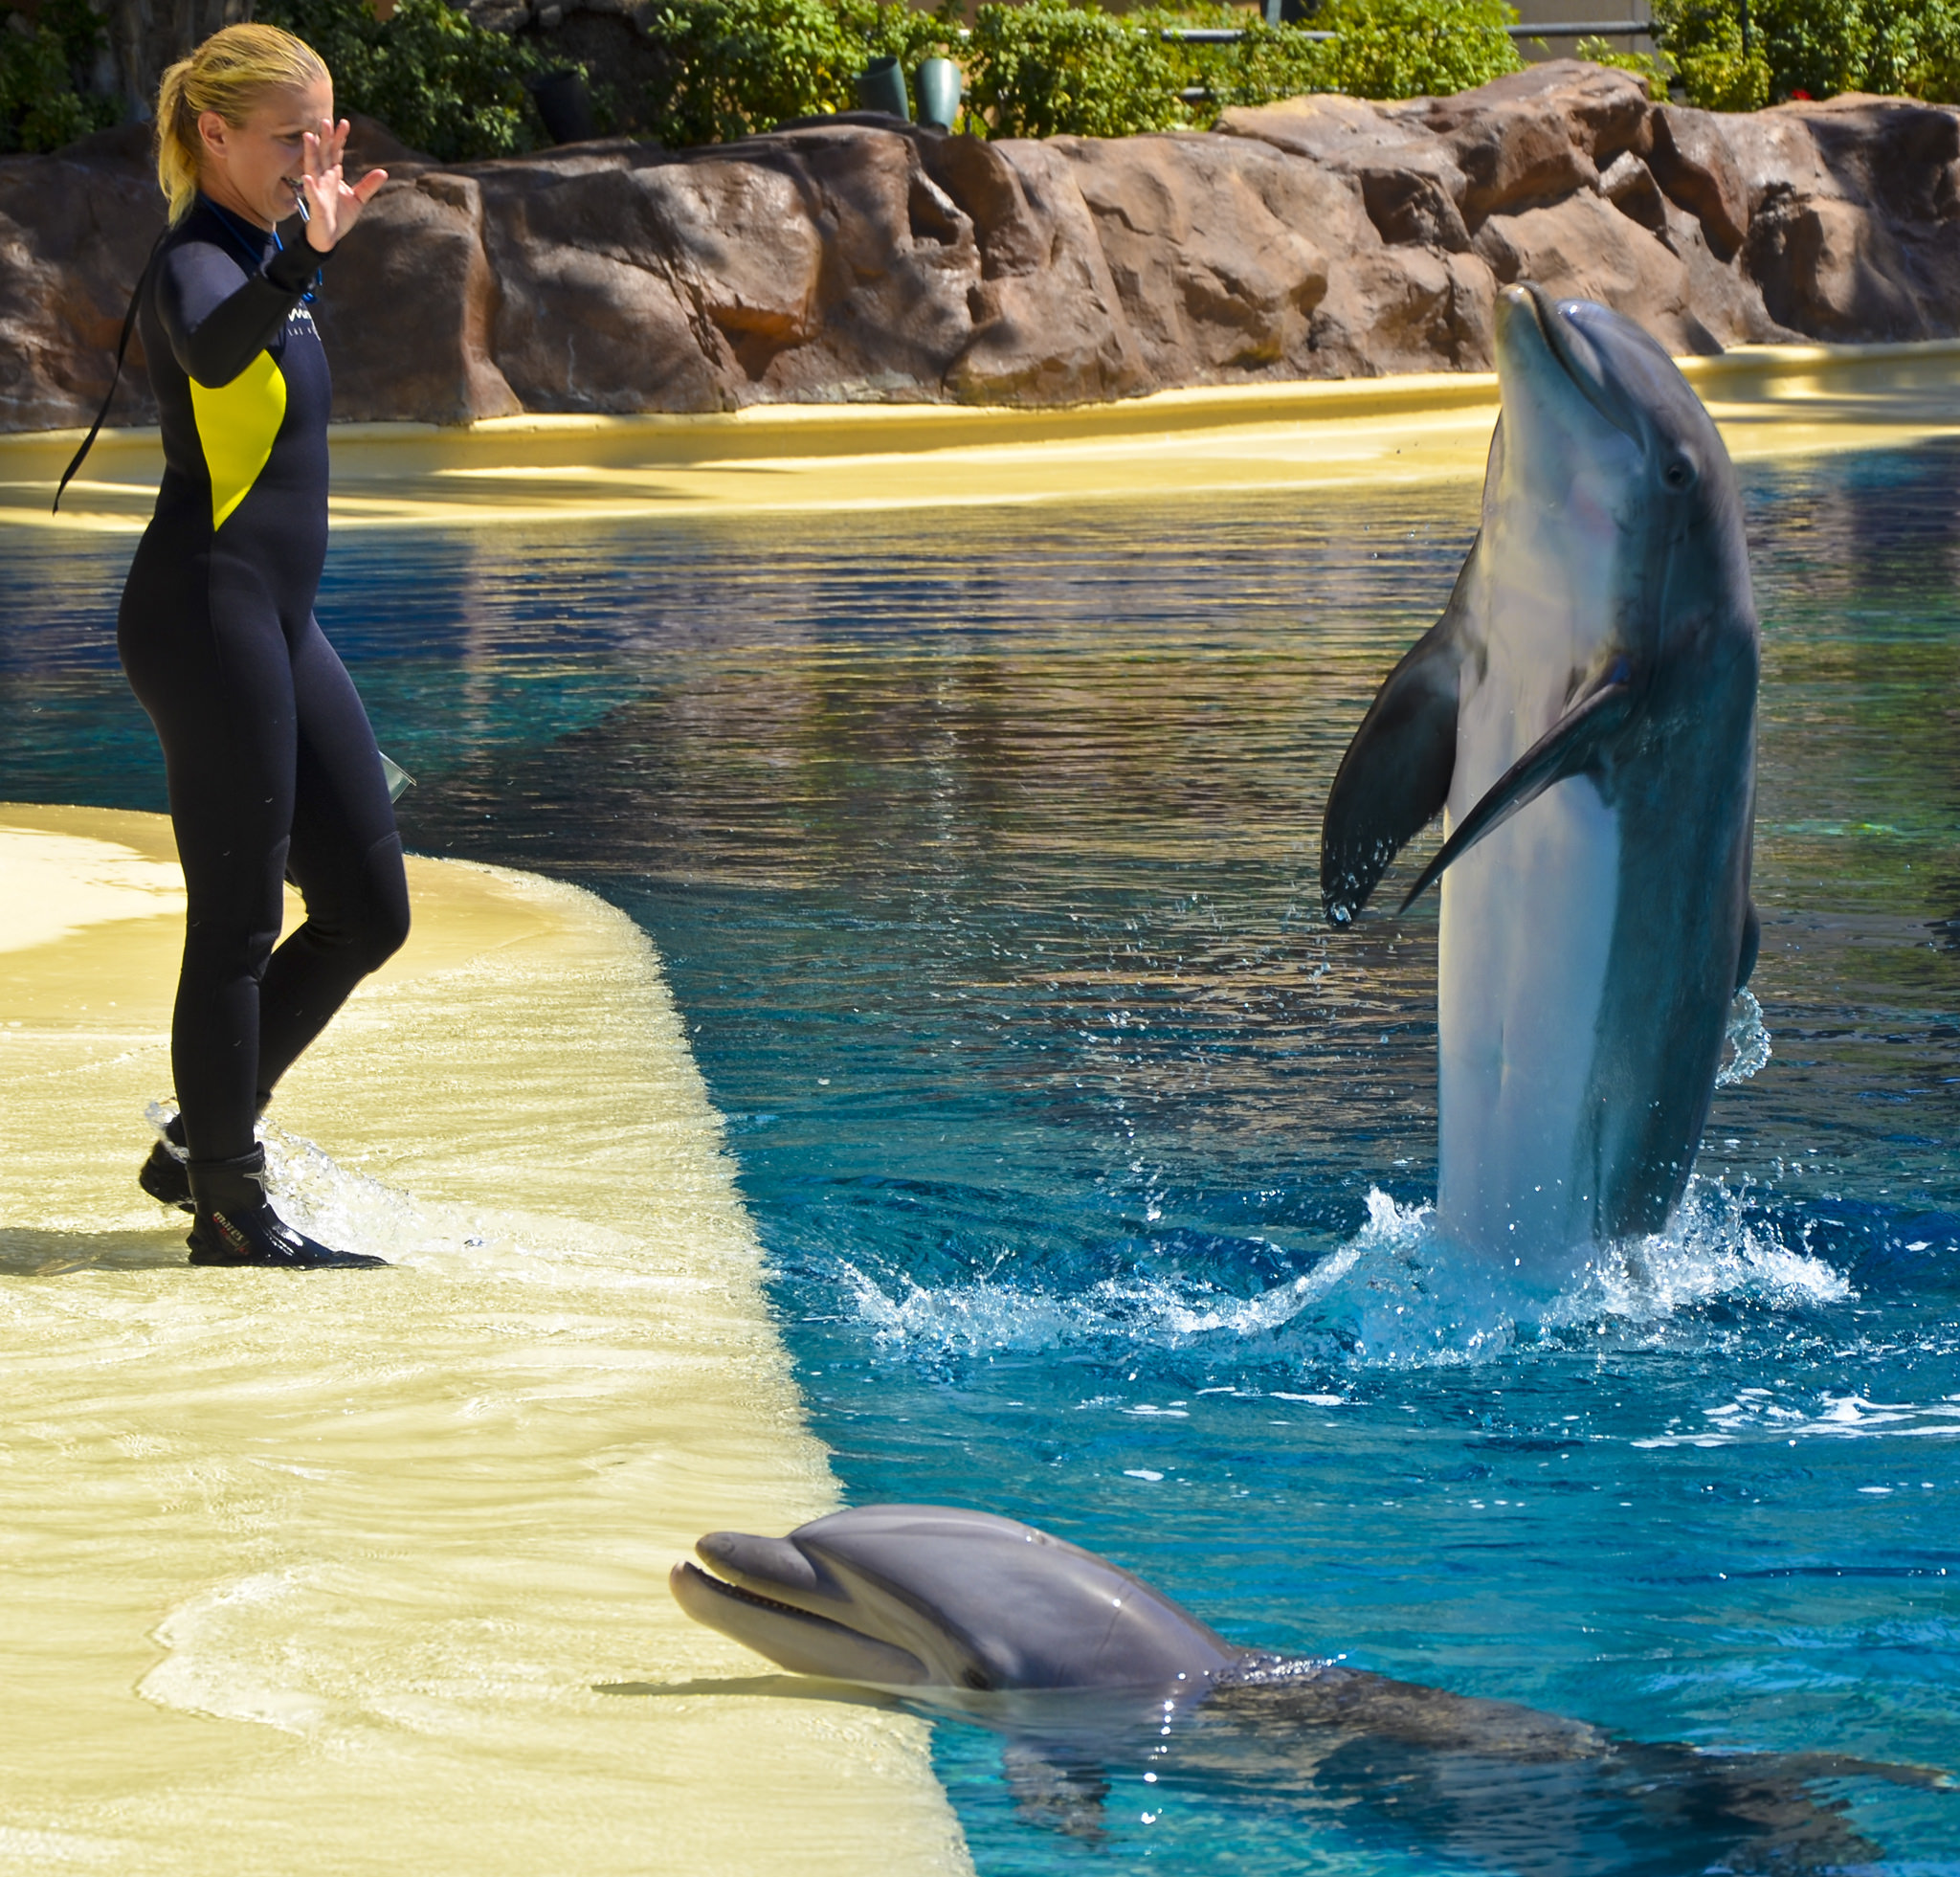 Dolphin training inside the Secret Garden | © Tomas Del Coro/Flickr